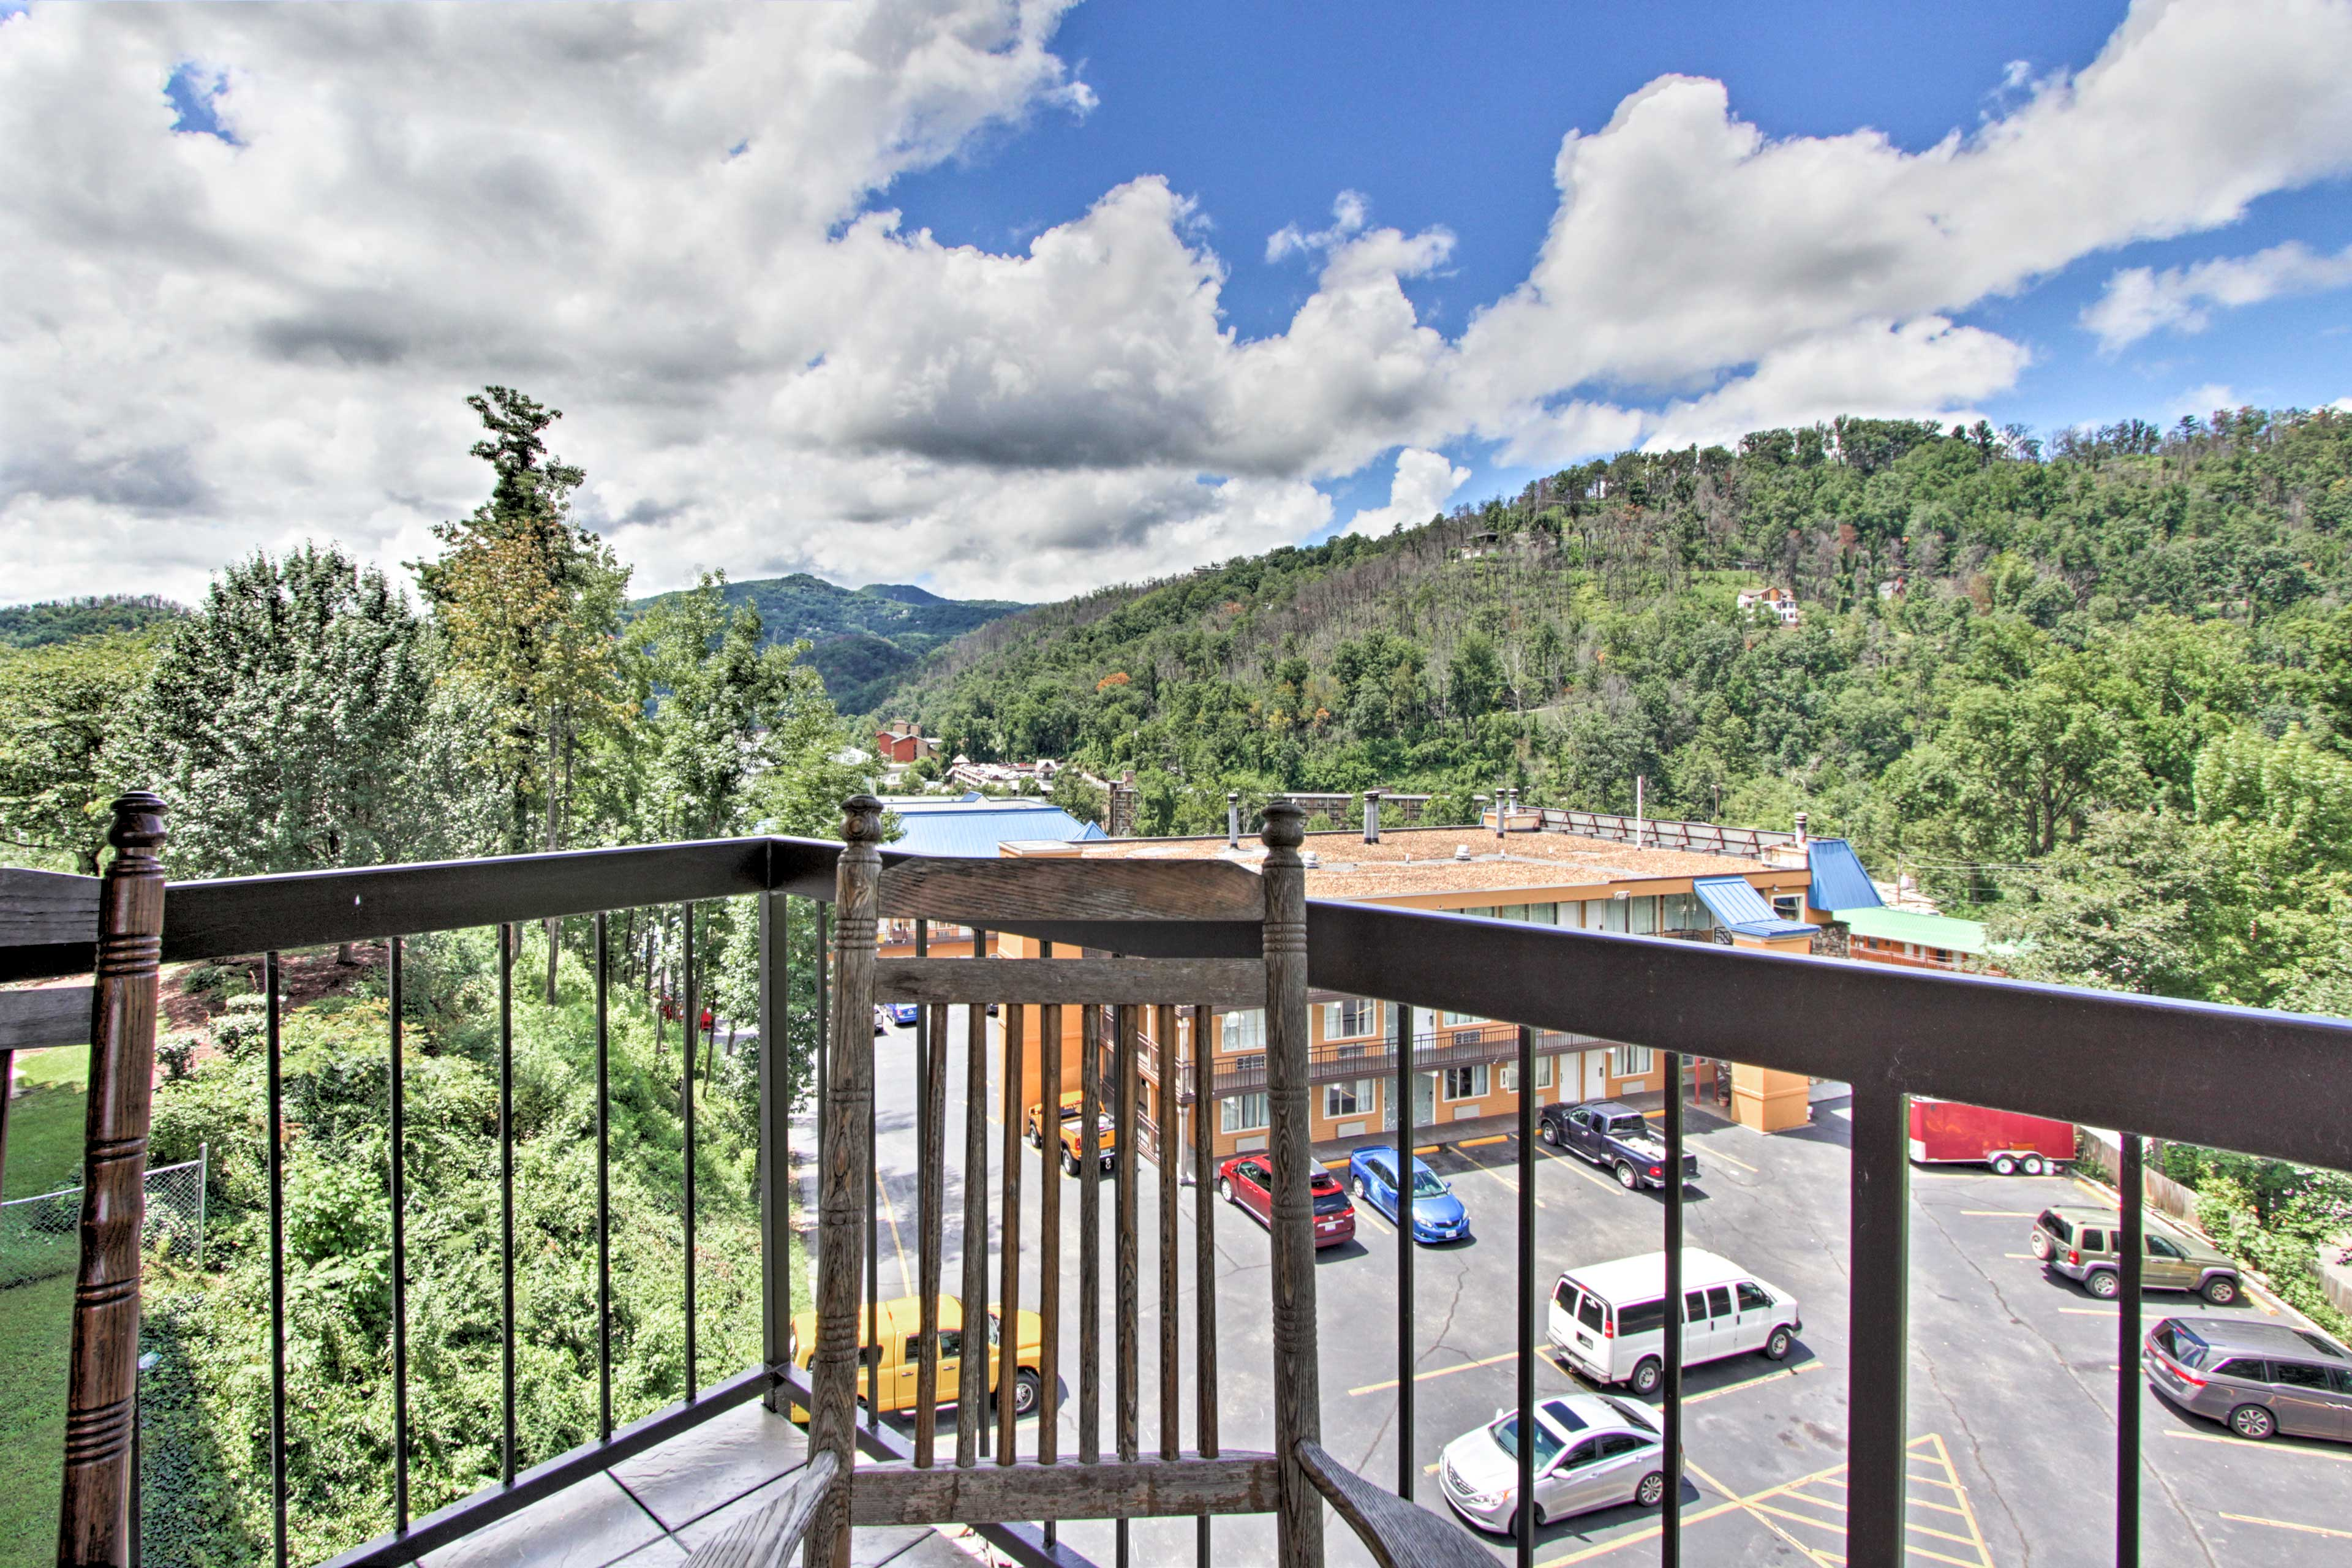 Your balcony overlooks the Smoky Mountains & faces downtown!